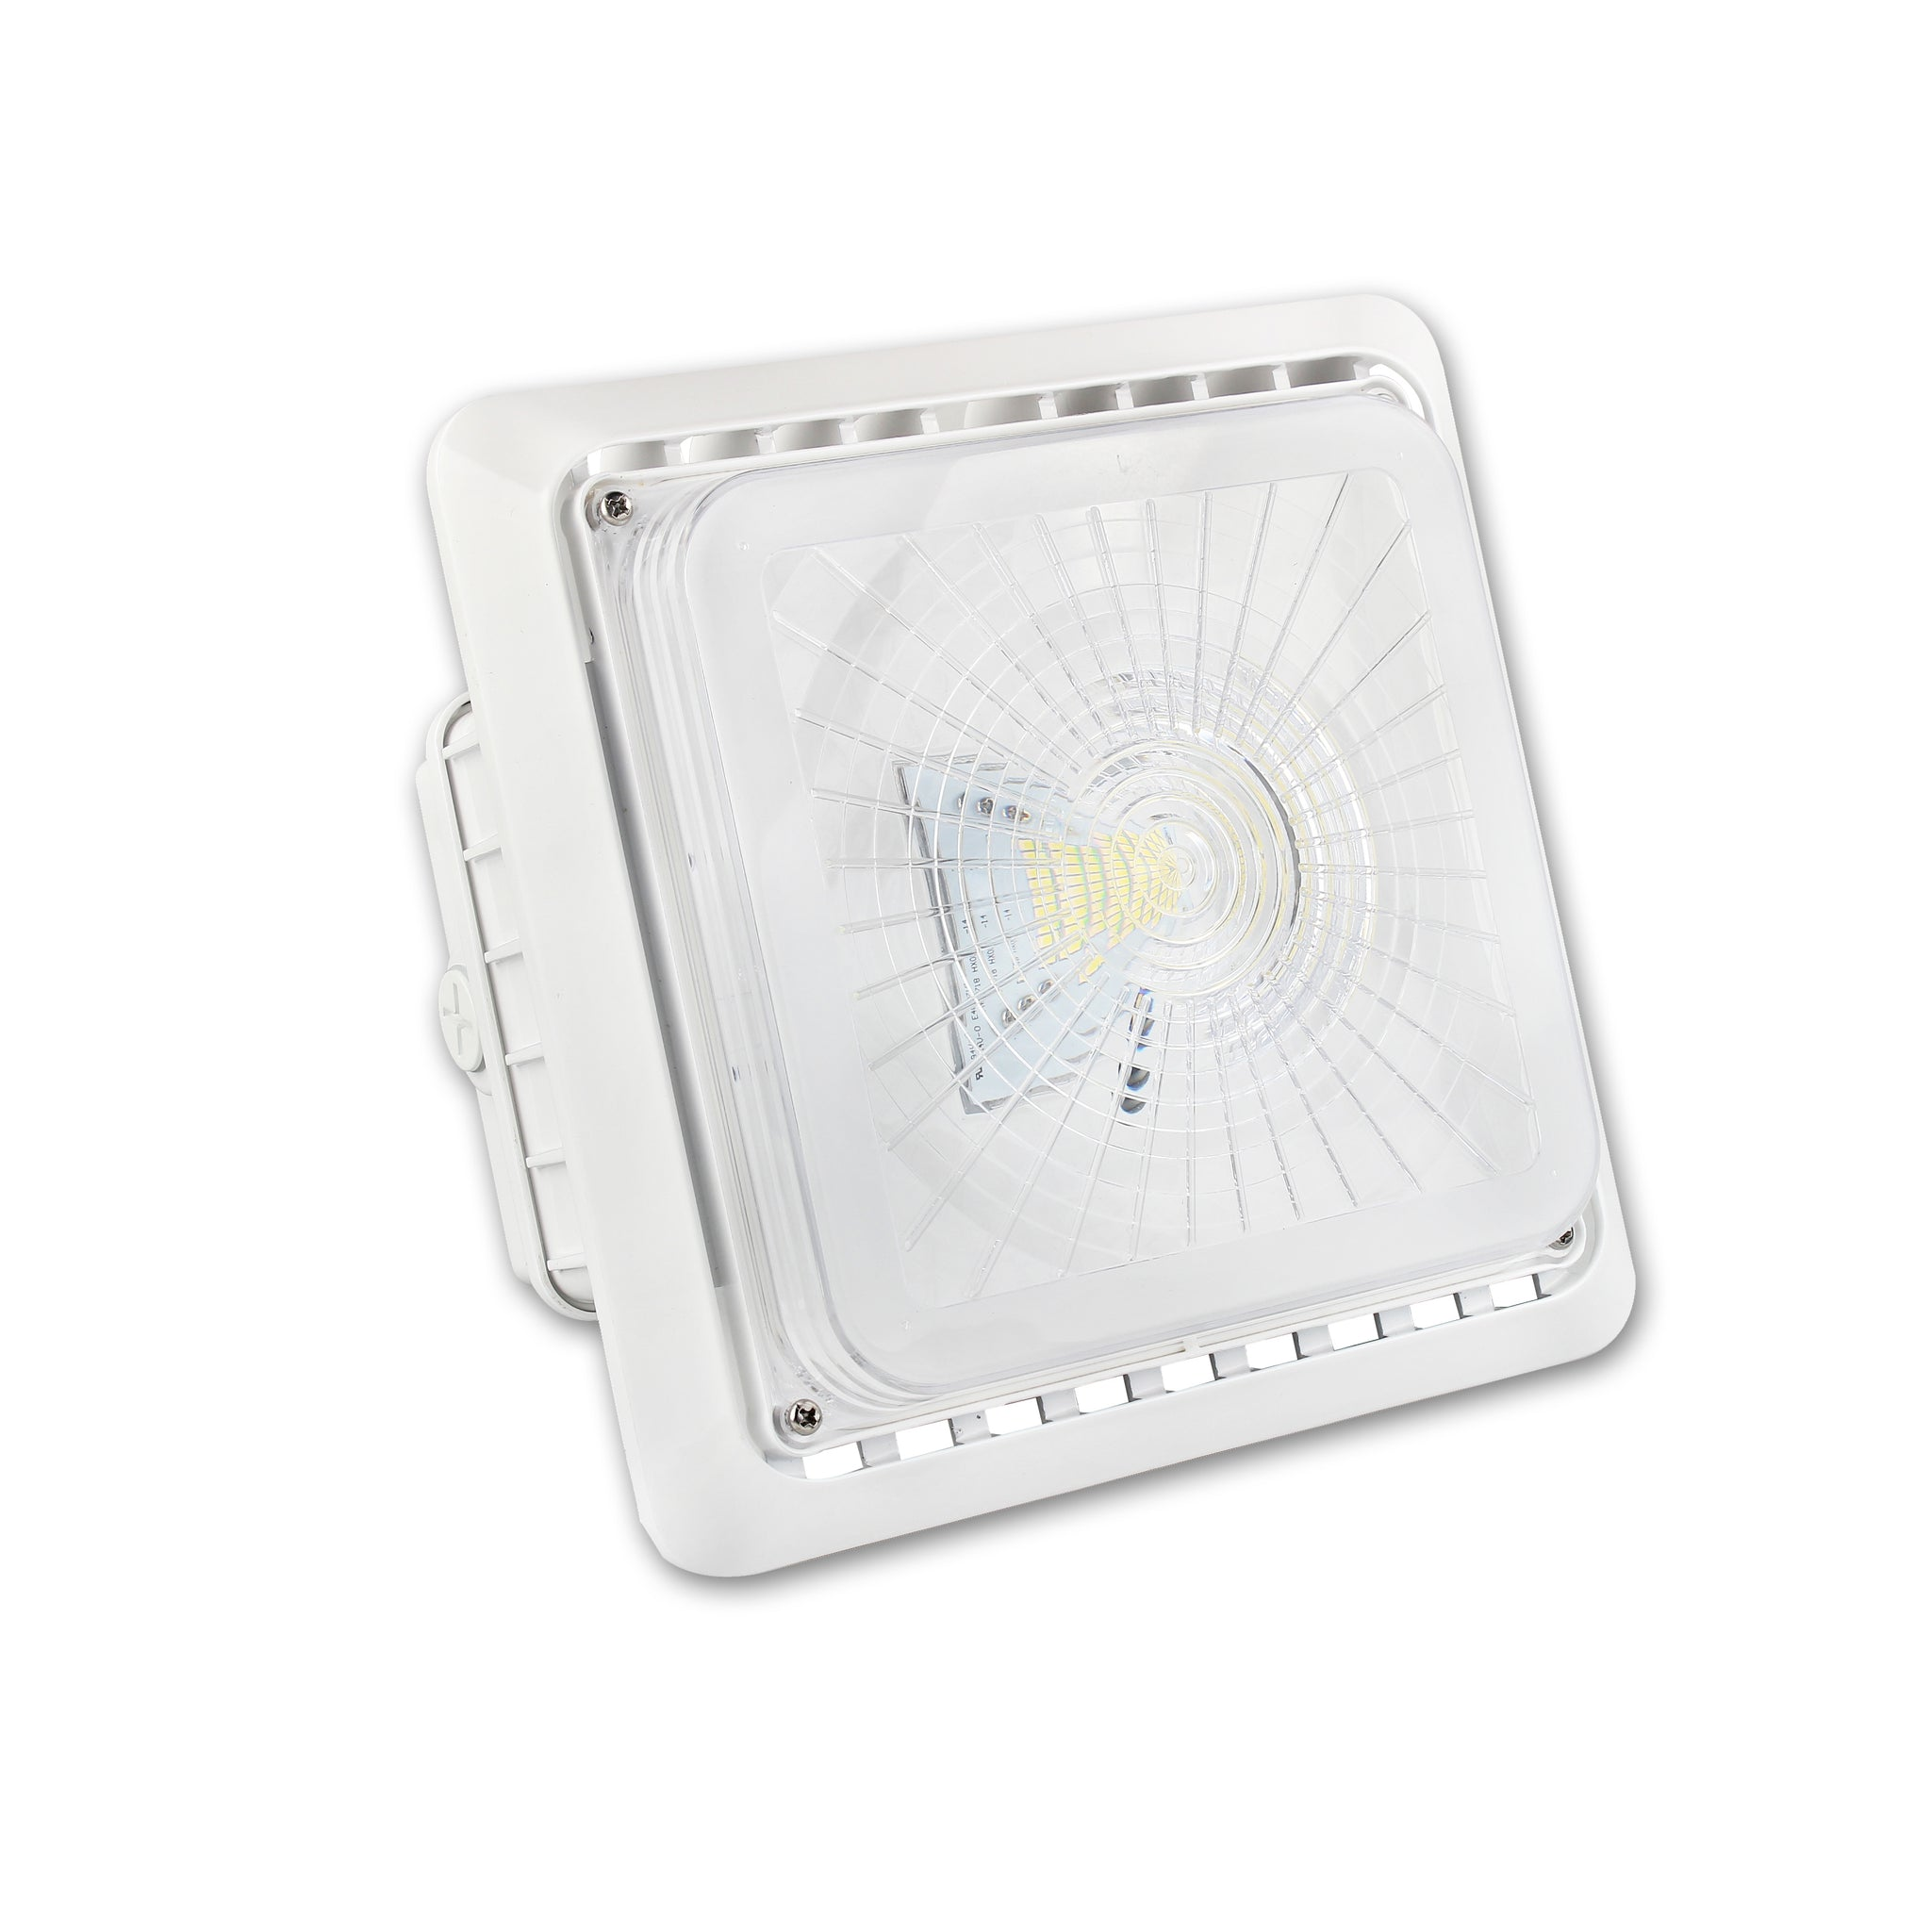 QPLUS LED Garage/ Parking Canopy Light - 40 Watt - 5000K Day Light - IP65 /cULus /277 - 480Volts